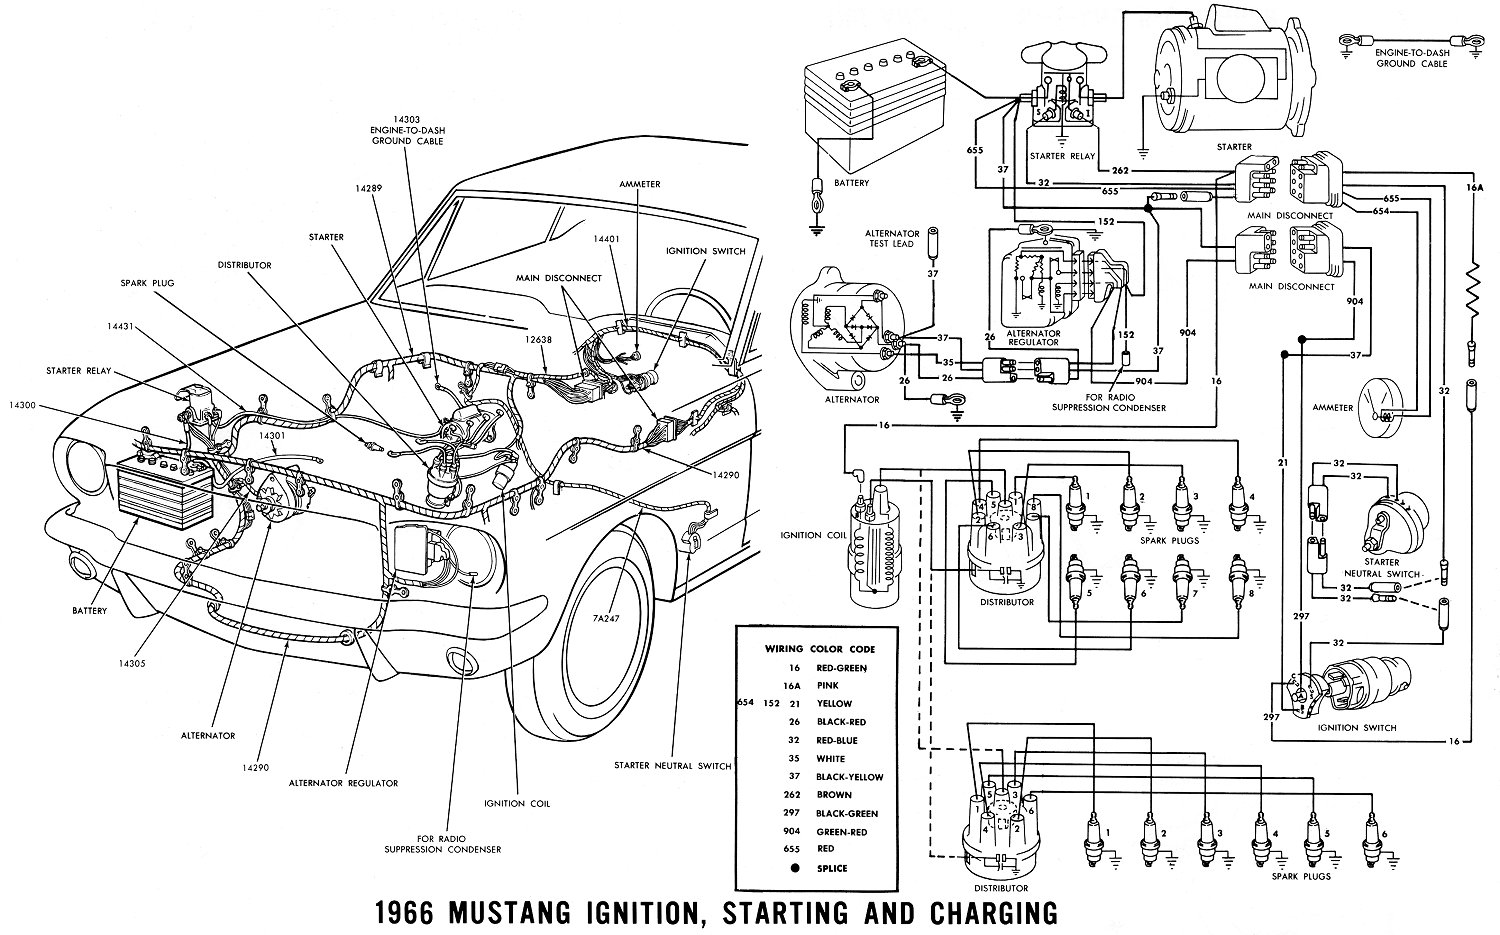 Pontiac 455 Engine Diagram as well Bldc Motor Control Circuits Diagram furthermore 1966 Mustang Ignition Wiring Diagram besides 11 besides US7152301. on us electric motor wiring diagram